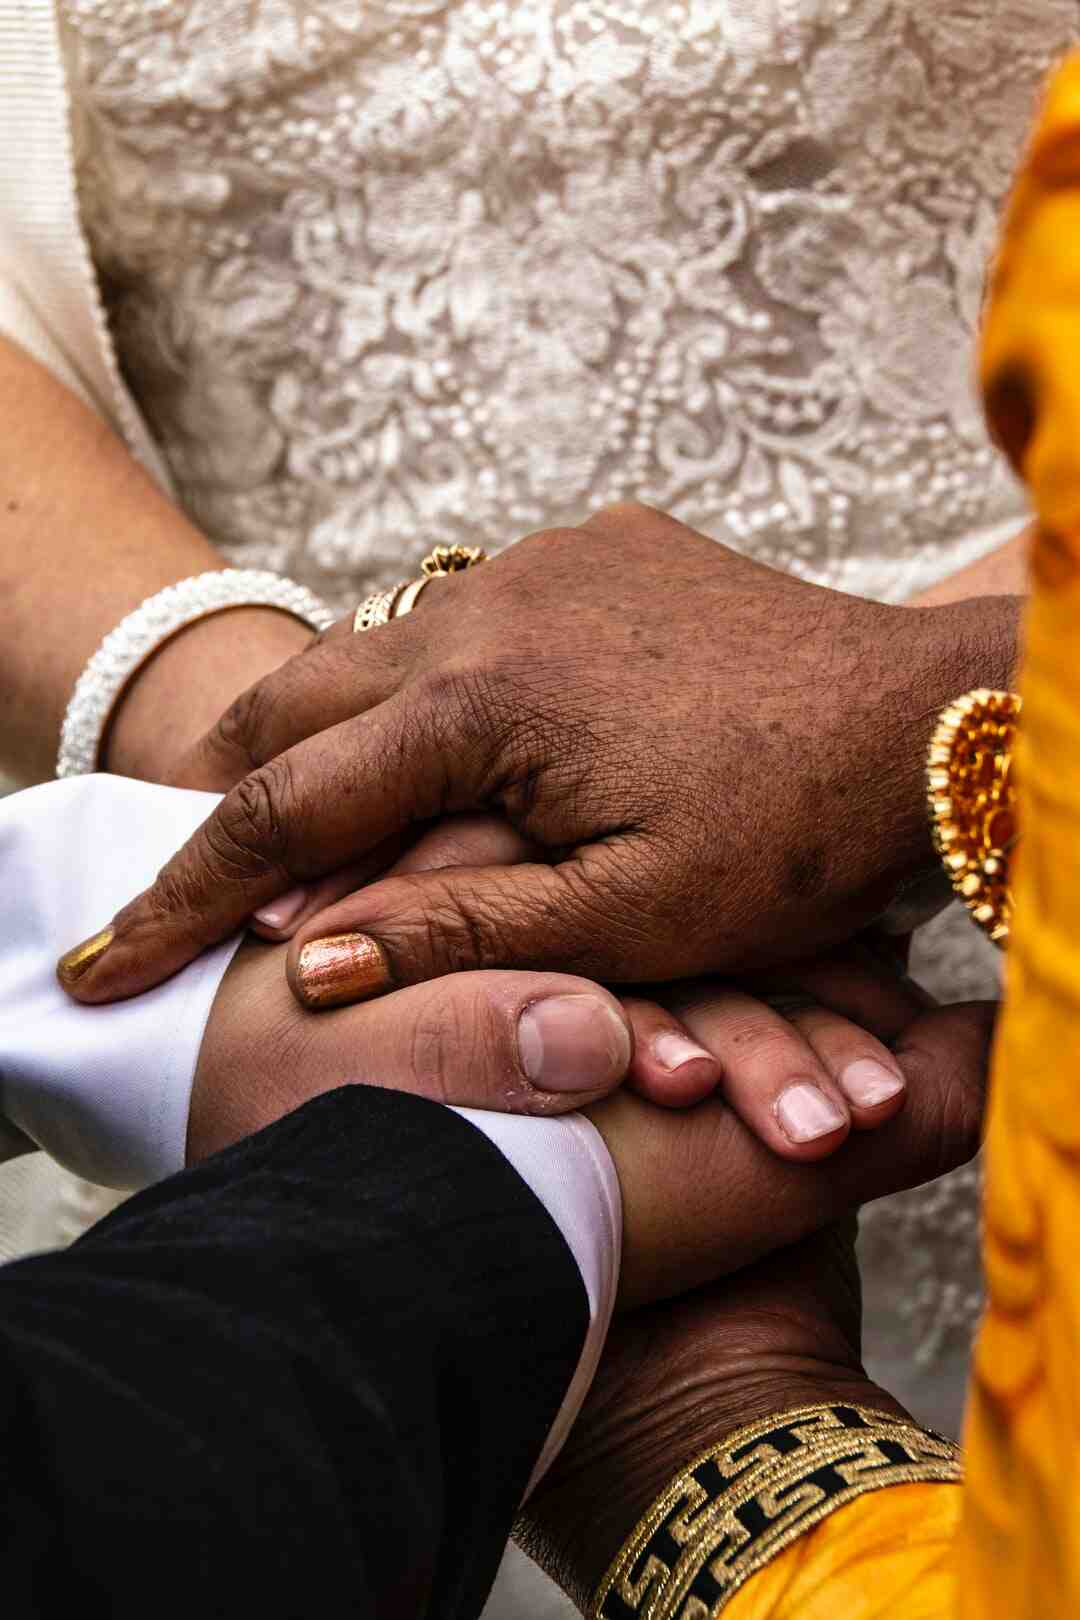 How to Deal With a Spouse's Previous Marriage